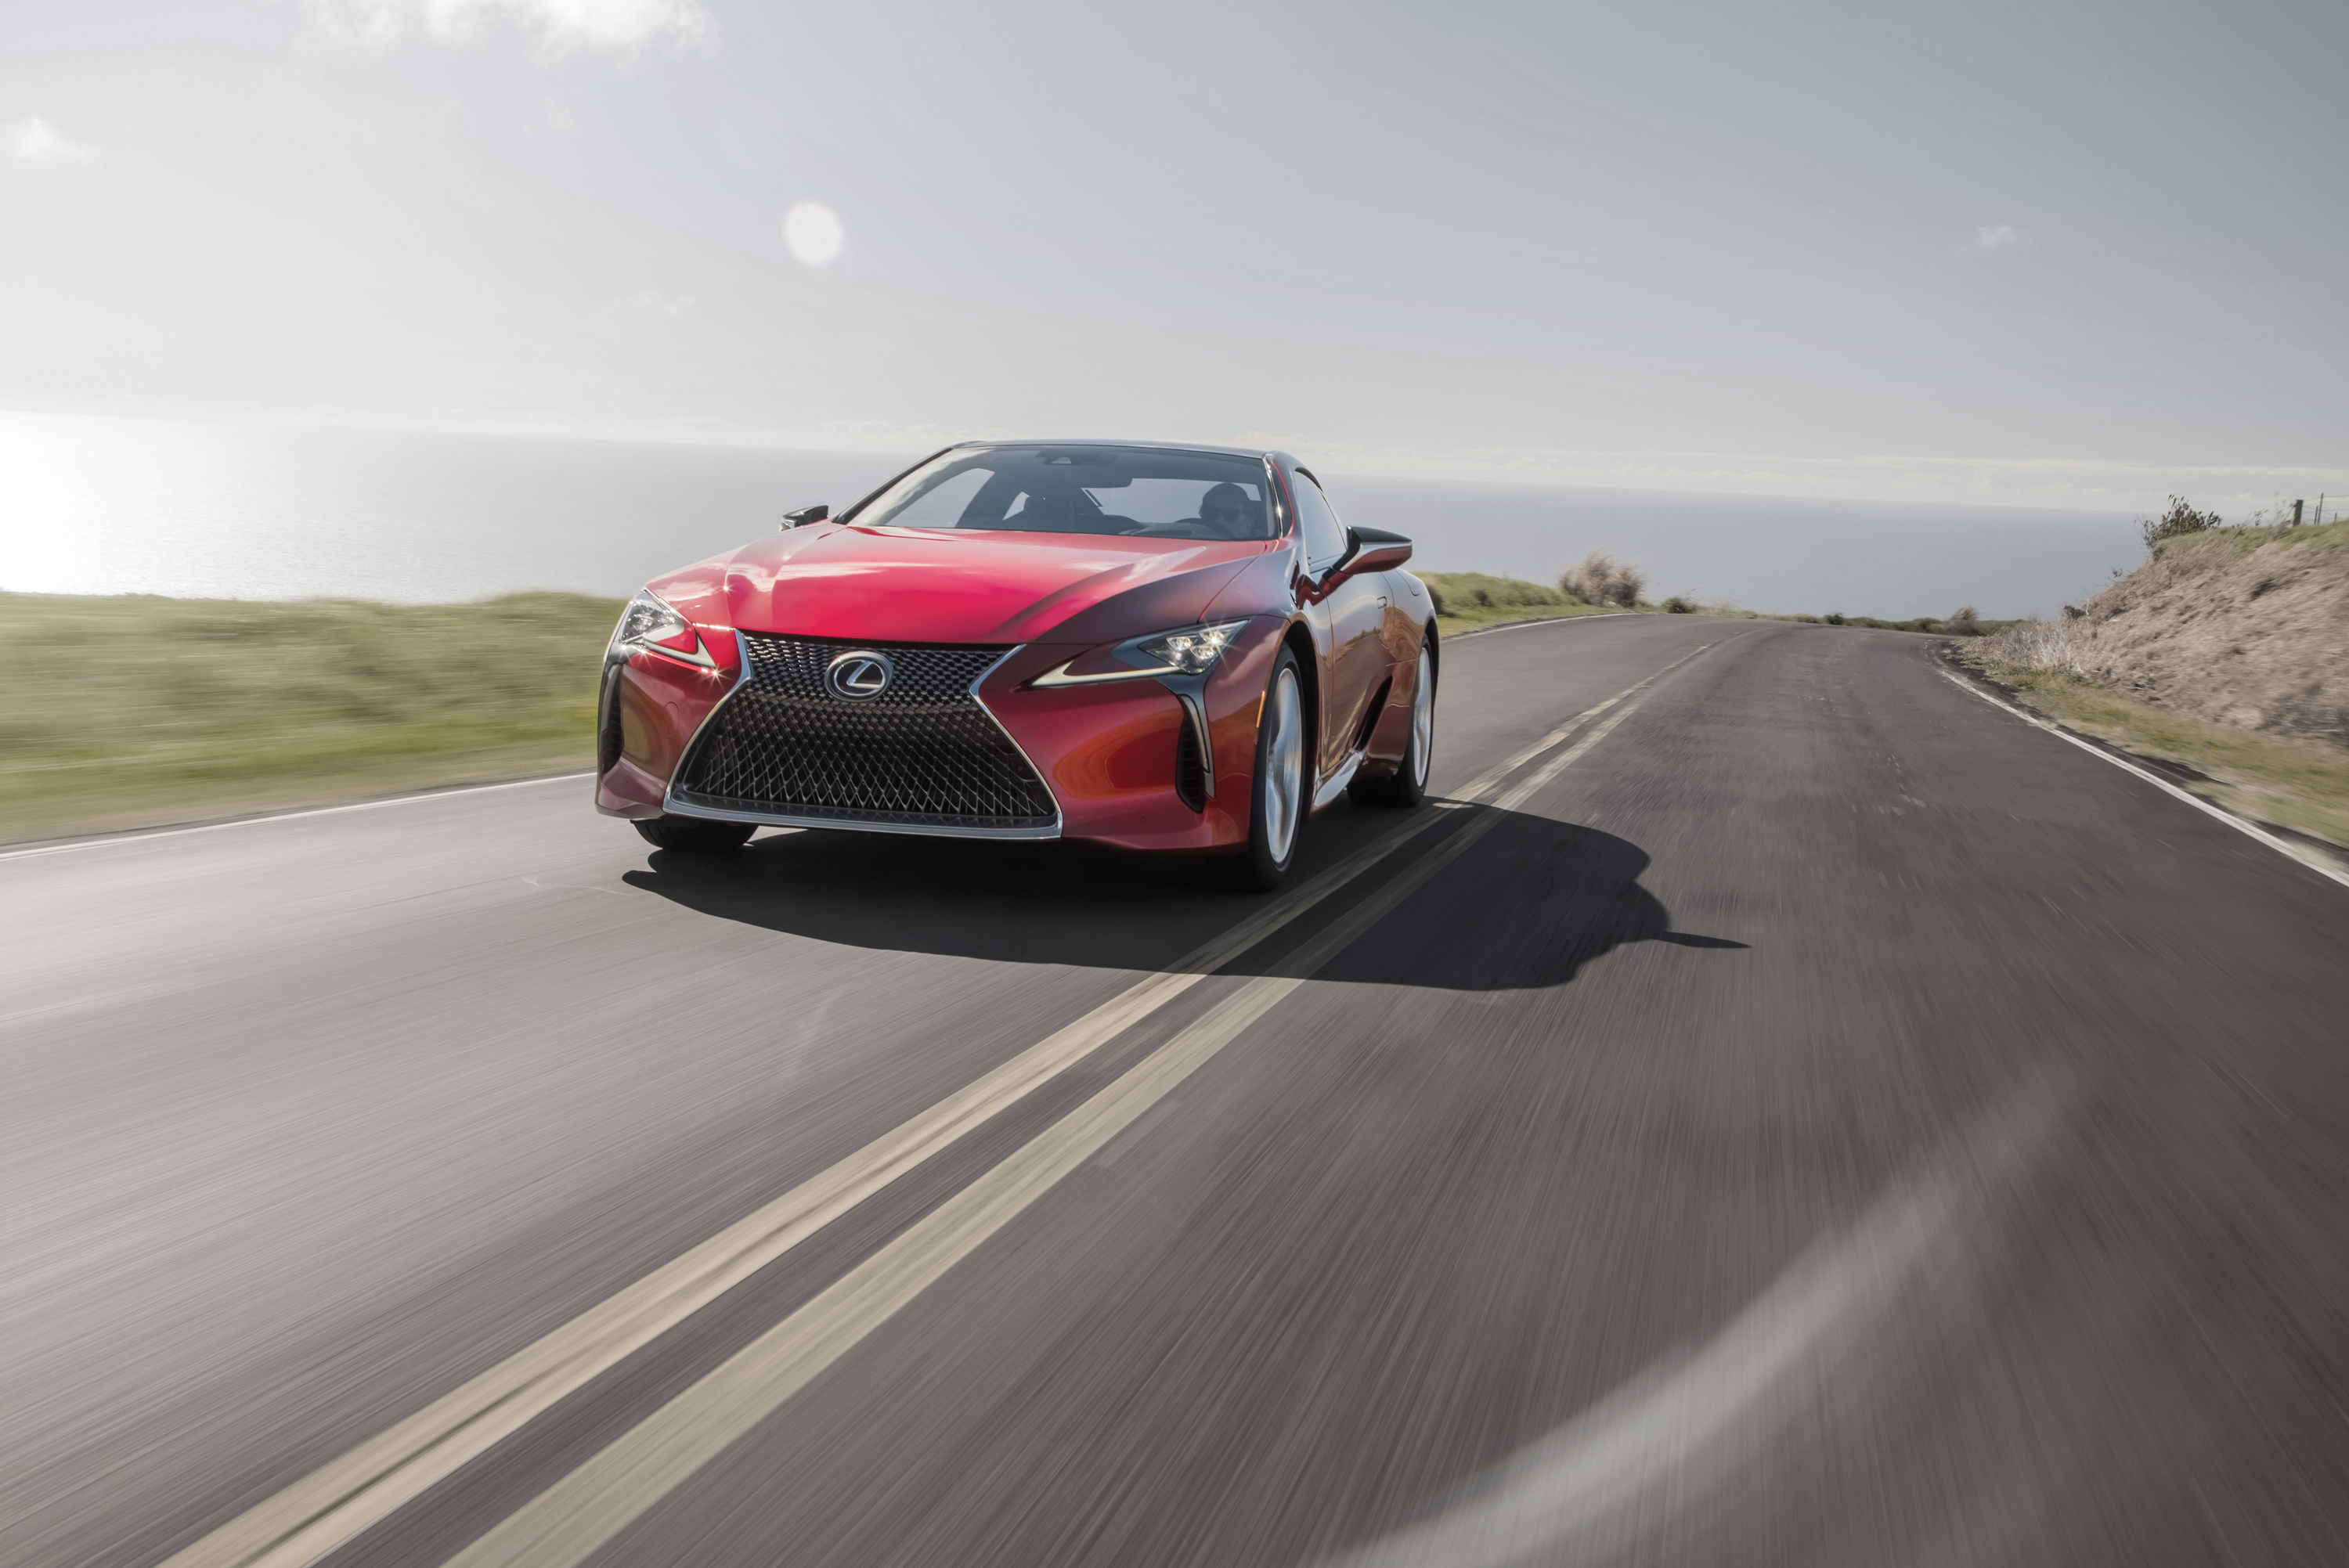 <p>When Lexus first showed the LF-LC concept at the North American Auto Show in Detroit in 2012, Toyota Chairman and family scion, Akio Toyoda, vowed that Lexus would never build another boring car again. </p>